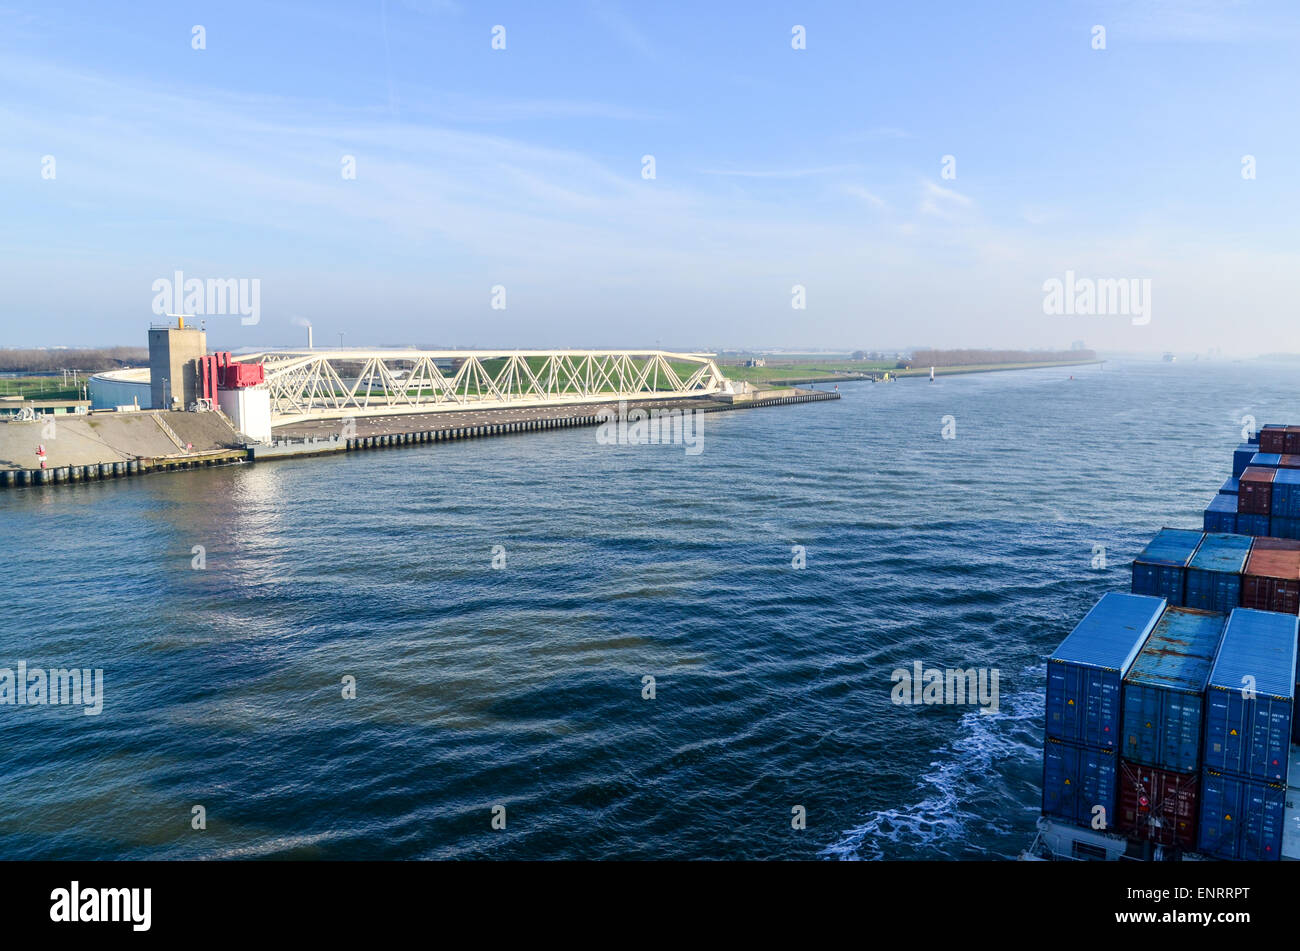 A cargo ship passing the Maeslantkering on the Nieuwe Waterweg, Rotterdam, a storm surge barrier - Stock Image